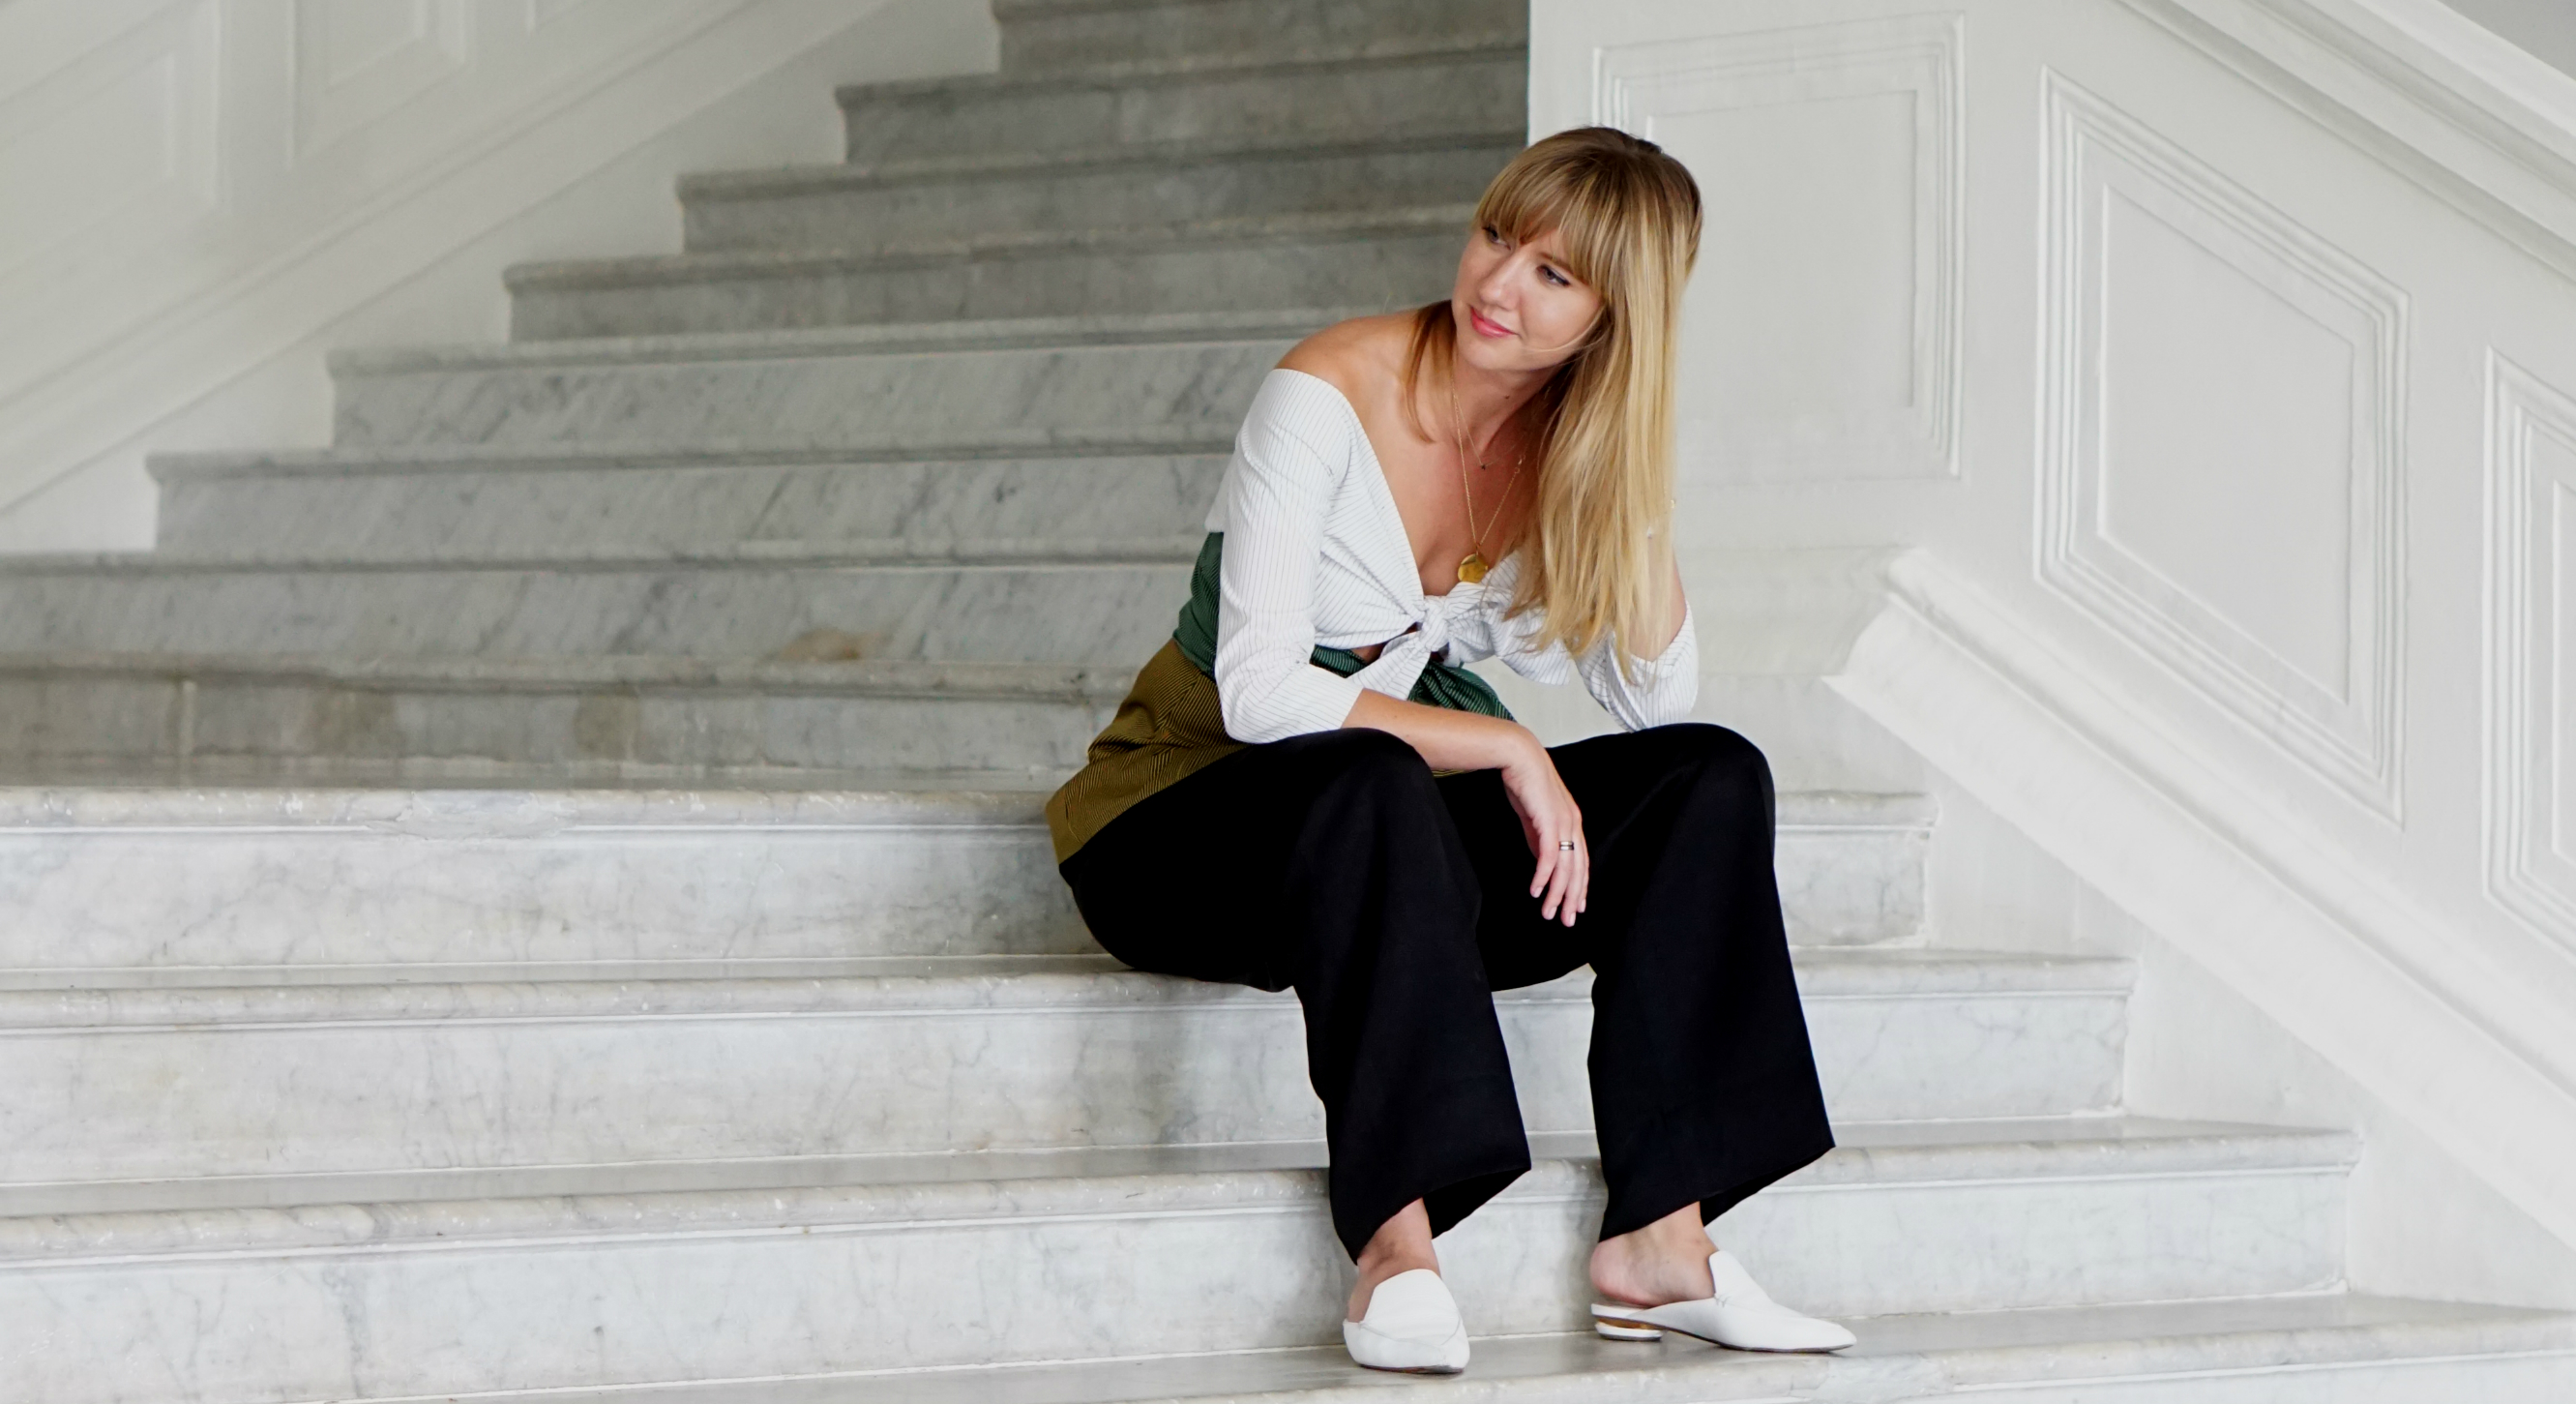 Check out: New York, by Lisa Aiken, Net-a-Porter's retail fashion director